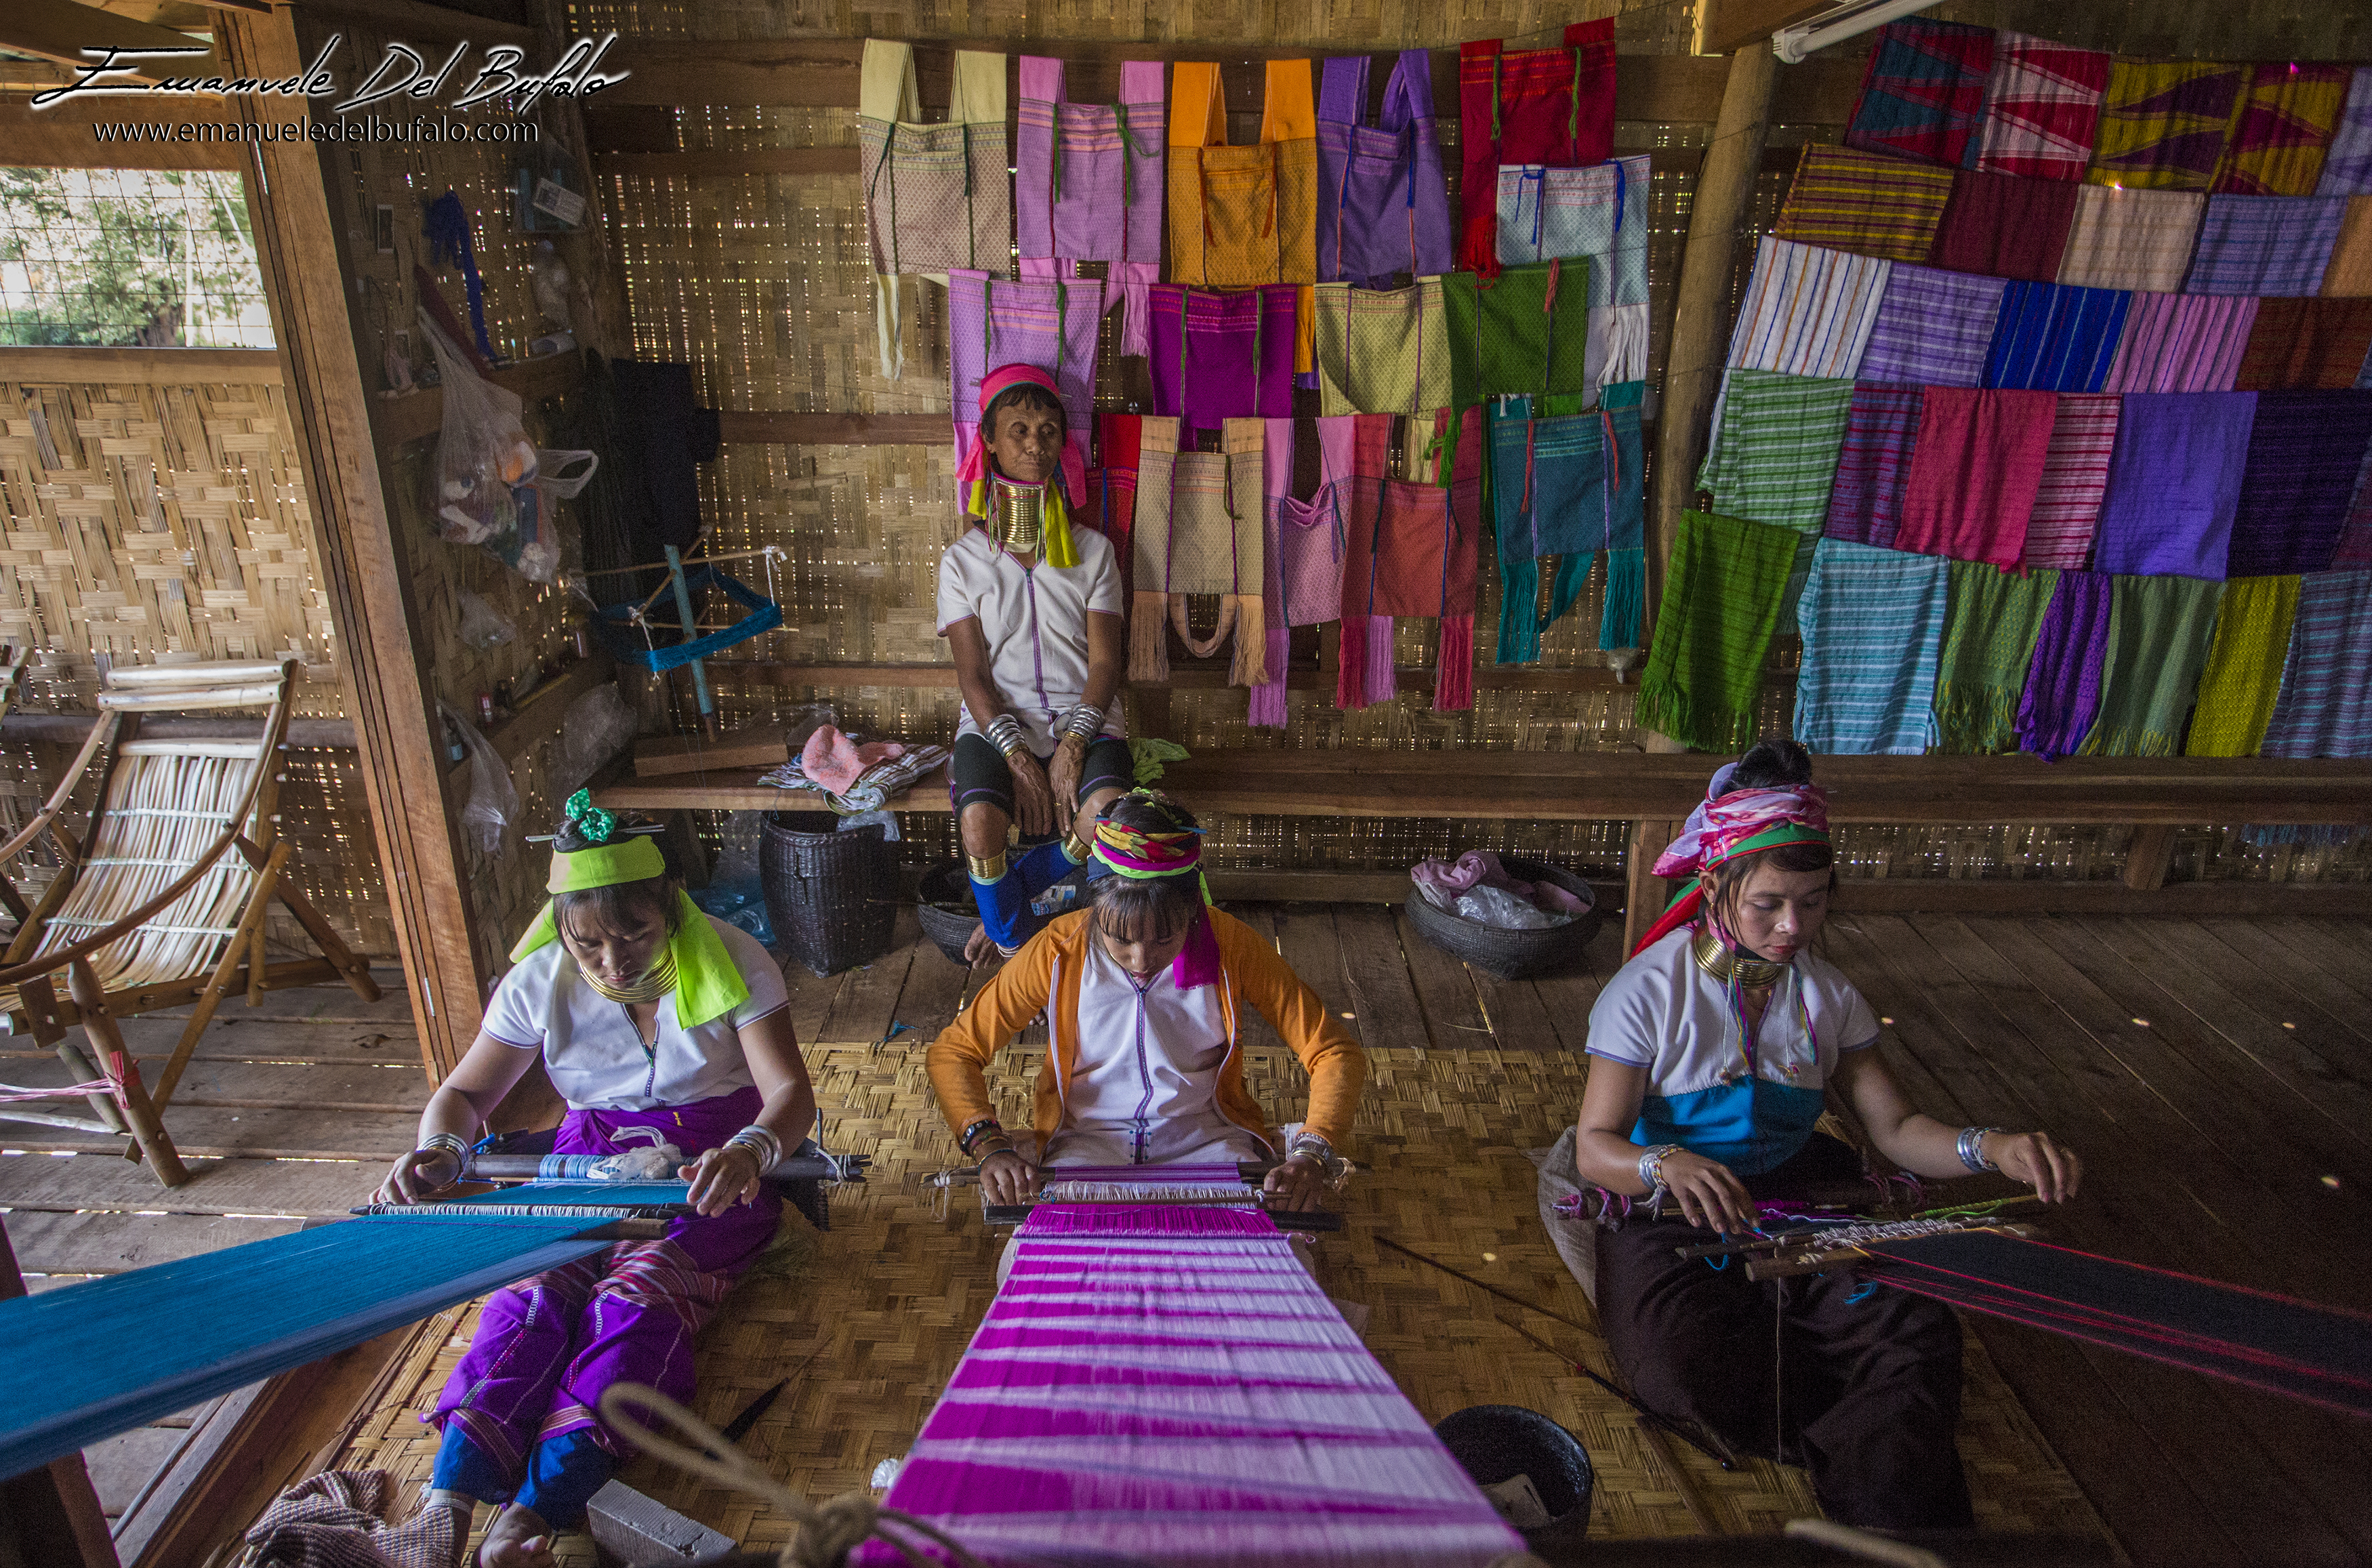 www.emanueledelbufalo.com #myanmar #burma #inle_lake #flooting_village #long_neck #people #asia